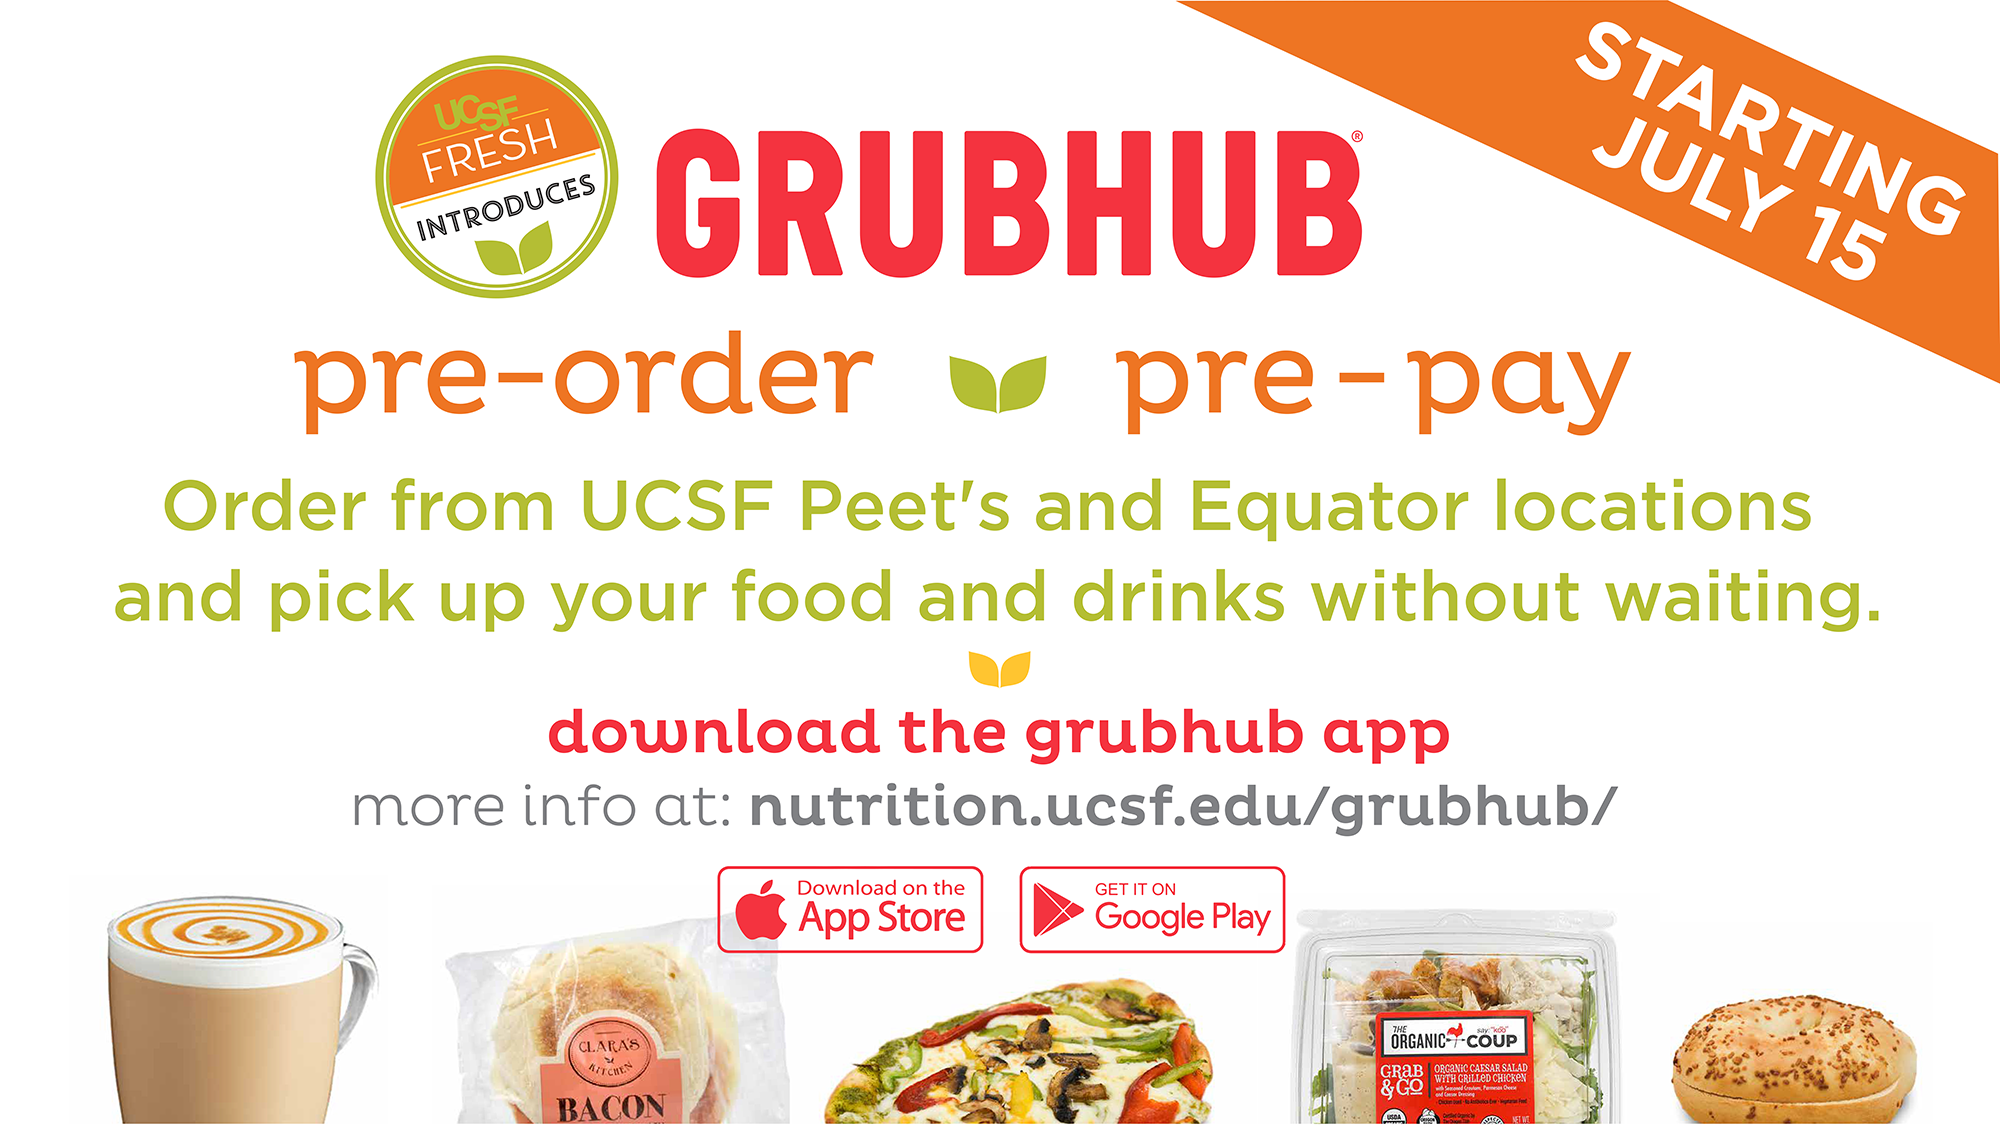 pre-order and pre-pay with Grubhub